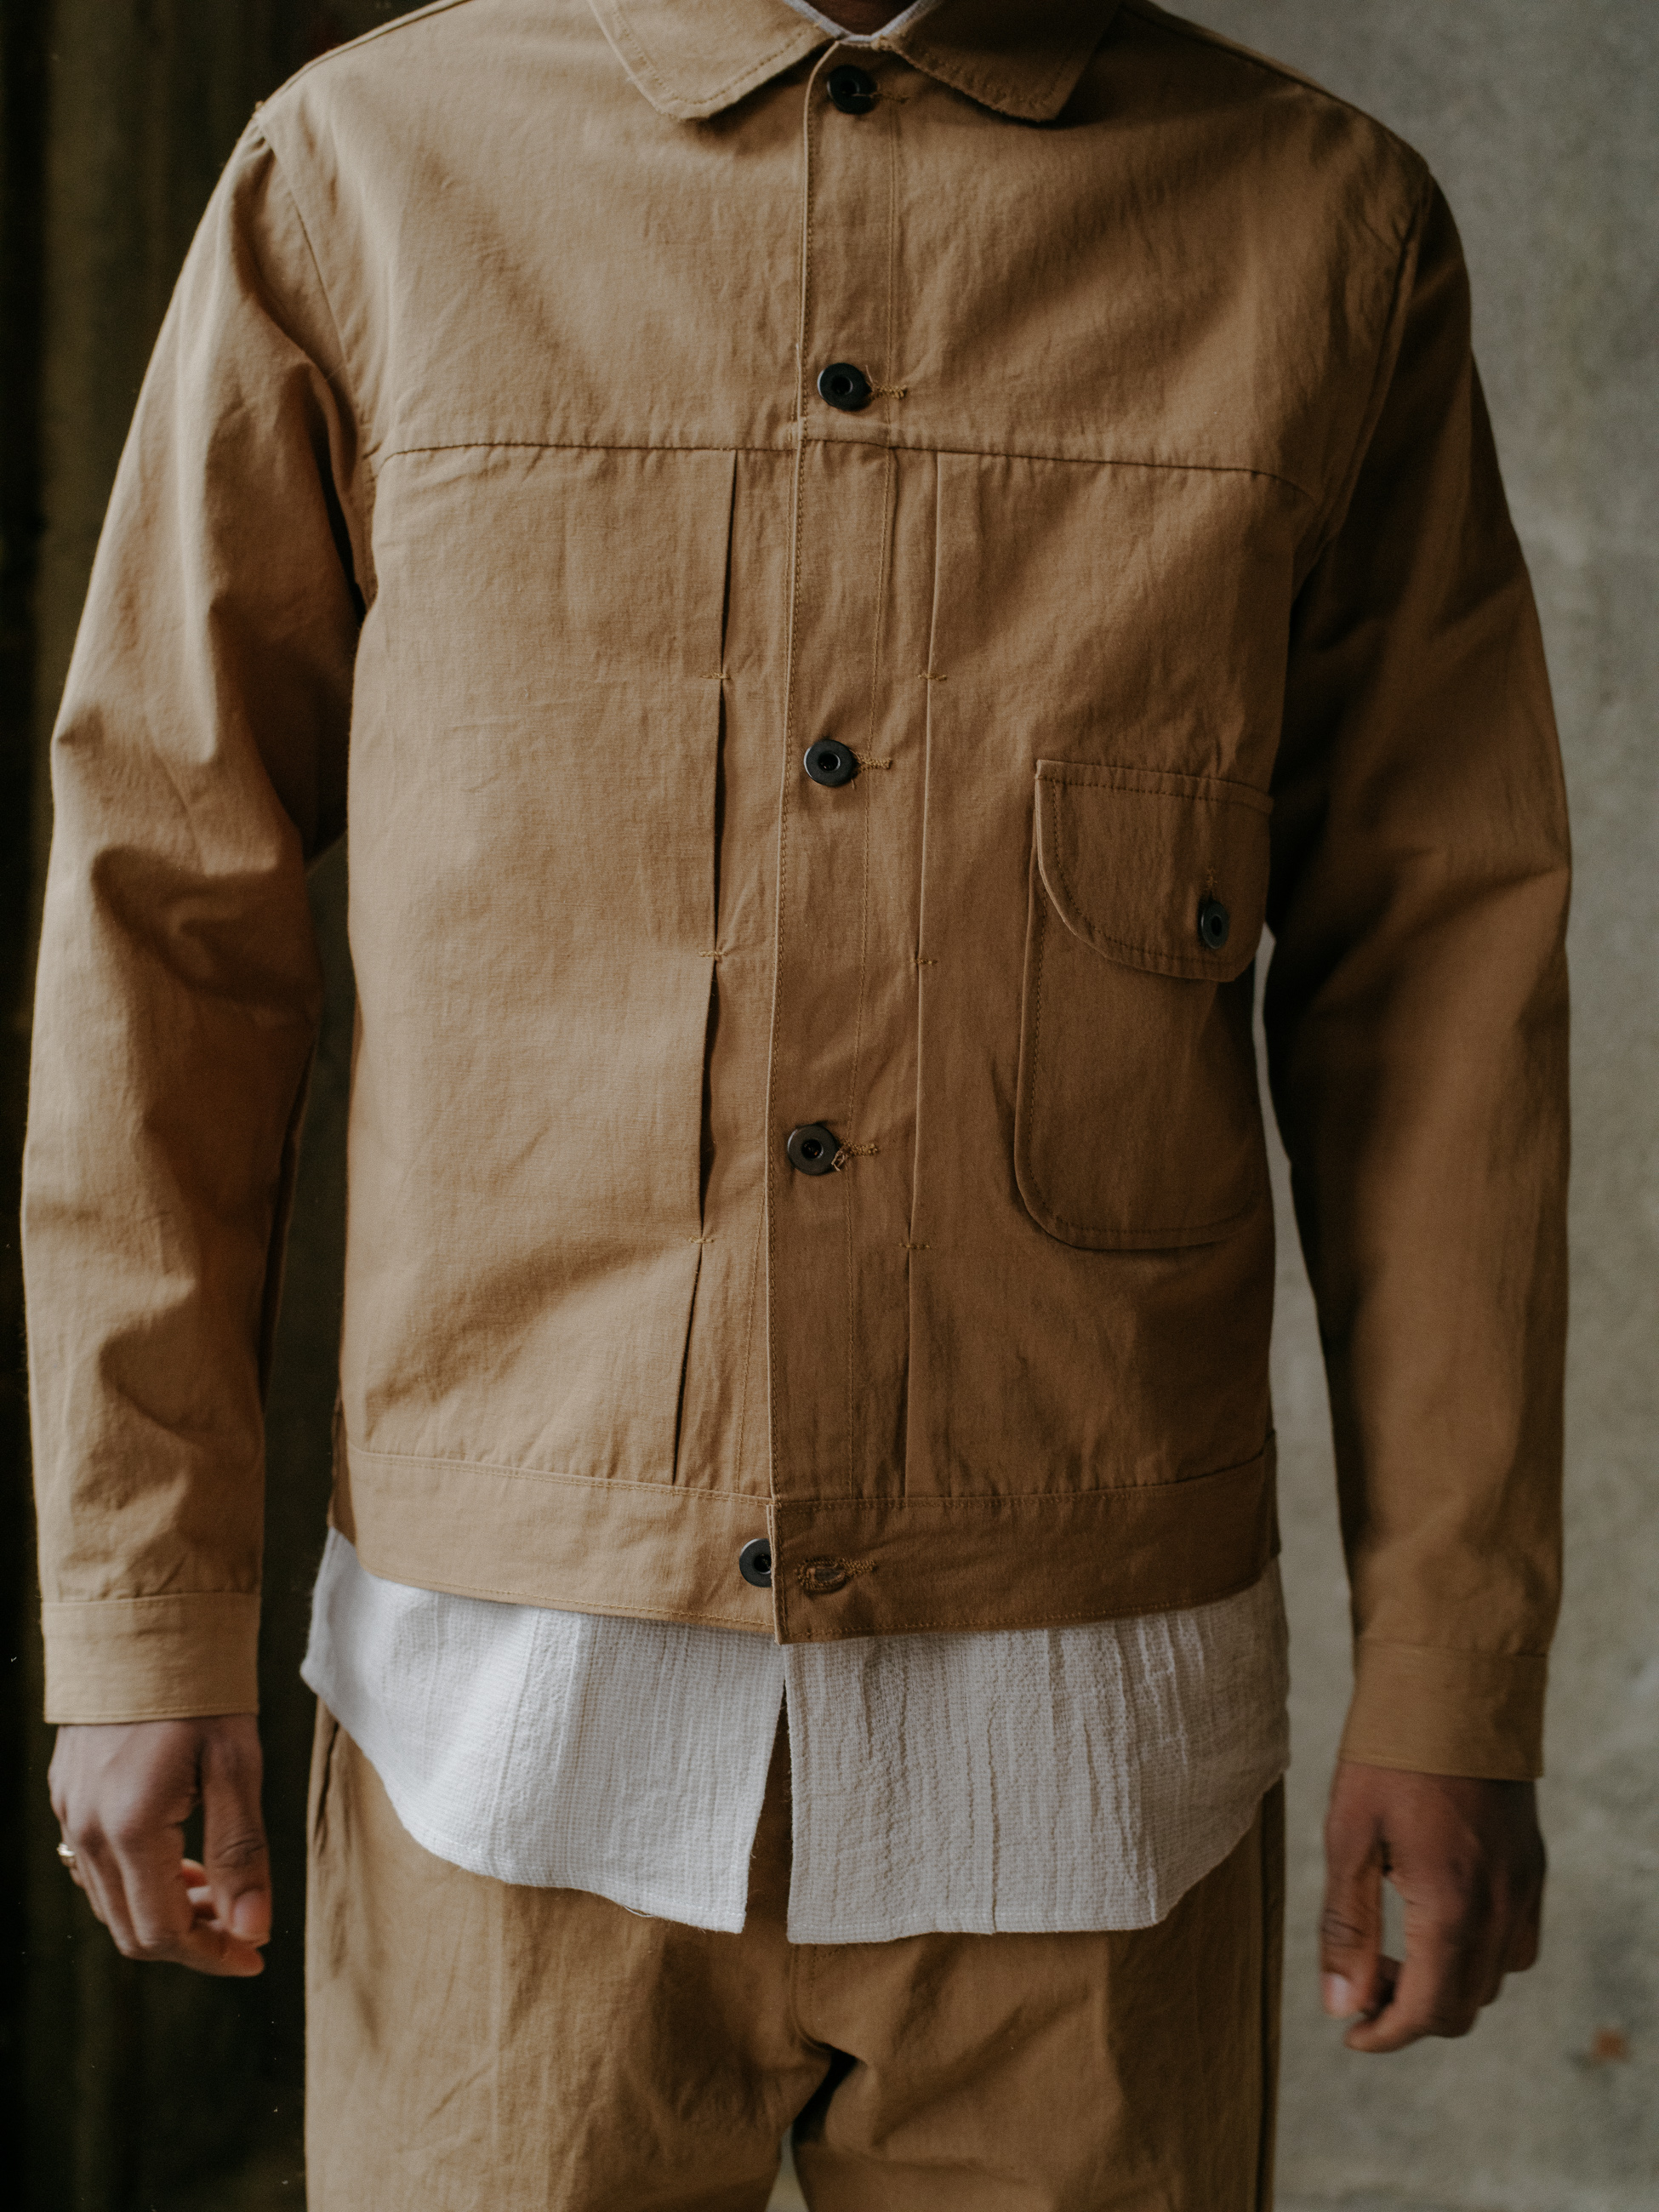 evan-kinori-pleated-jacket-cotton-hemp-typewriter-4